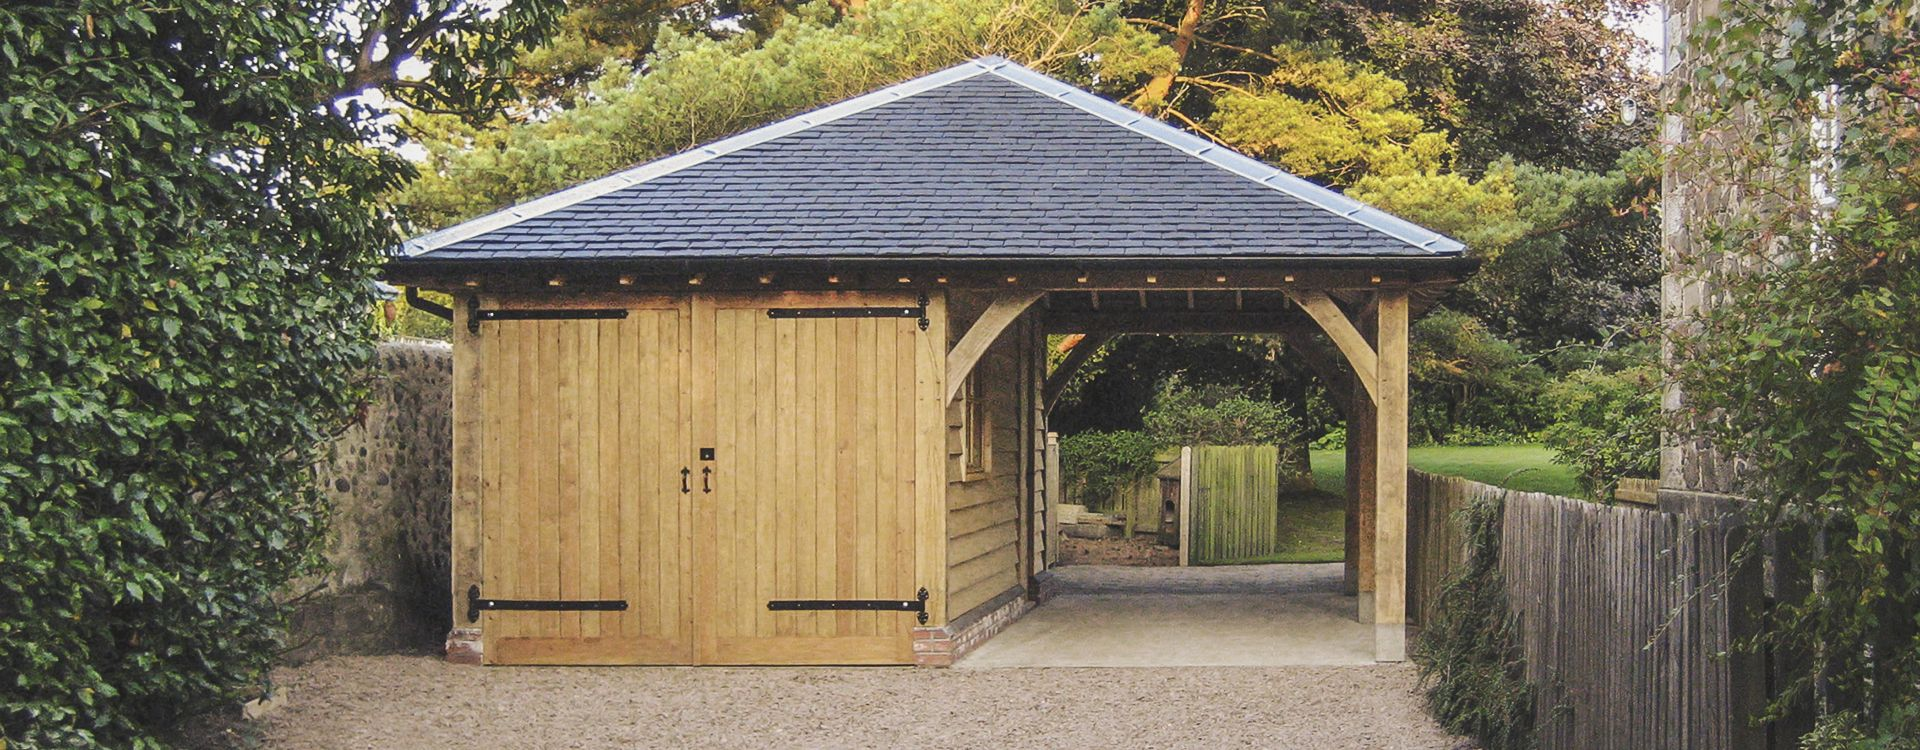 Oak Framed Carports Timber Car Port Kits Carport Timber